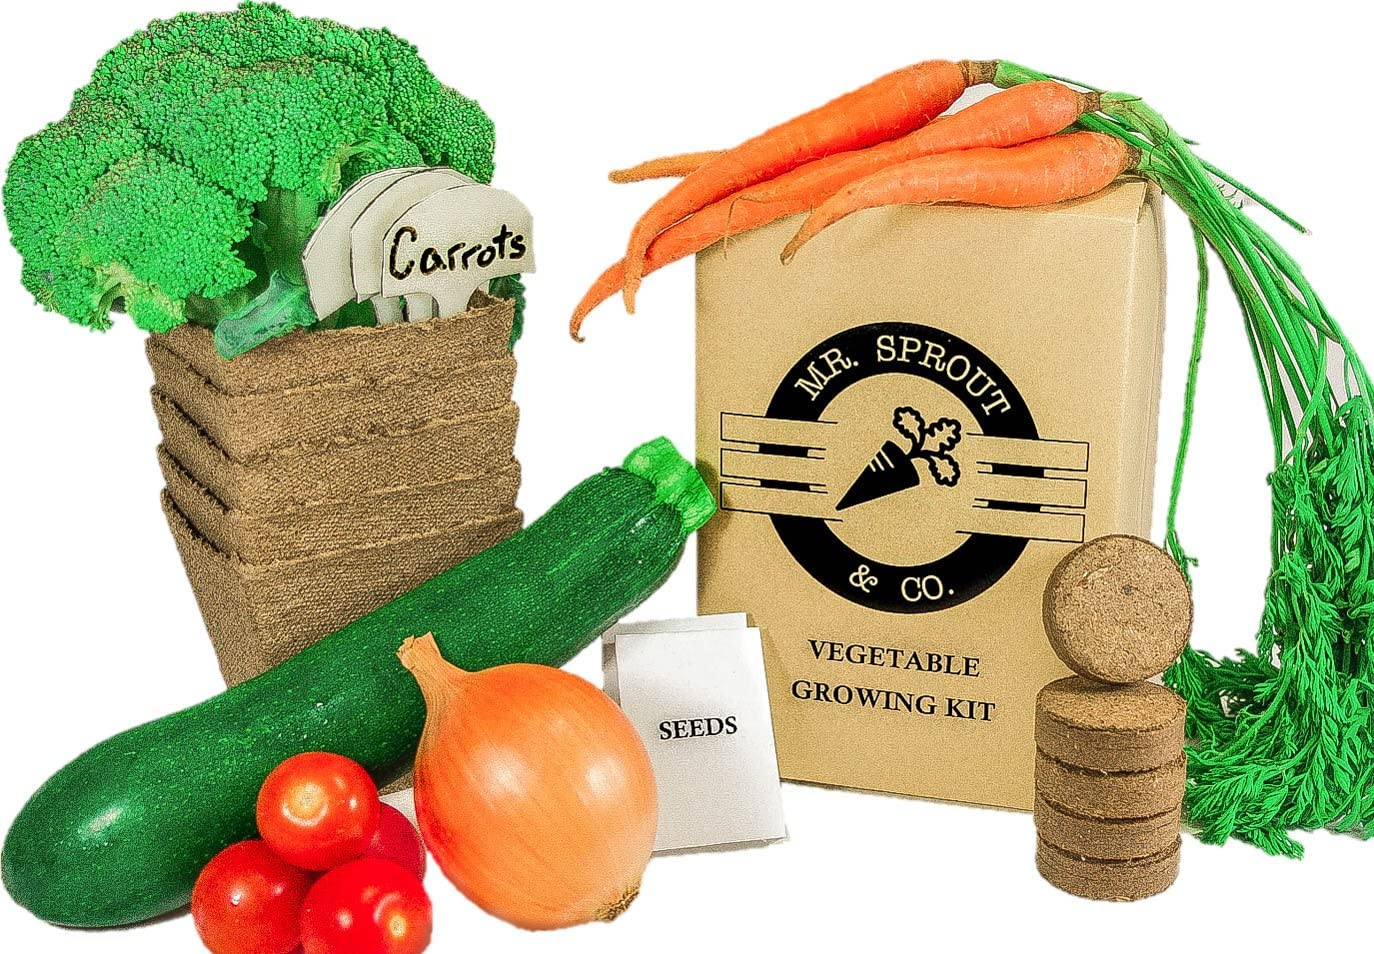 Mr. Sprout & Co Organic Vegetable Garden Kit - Vegetable Garden Seed Starter Kit for Kids, Adults Or Gift Idea- Includes Seeds for Cherry Tomatoes, Broccoli, Onions, Carrots, Zucchini